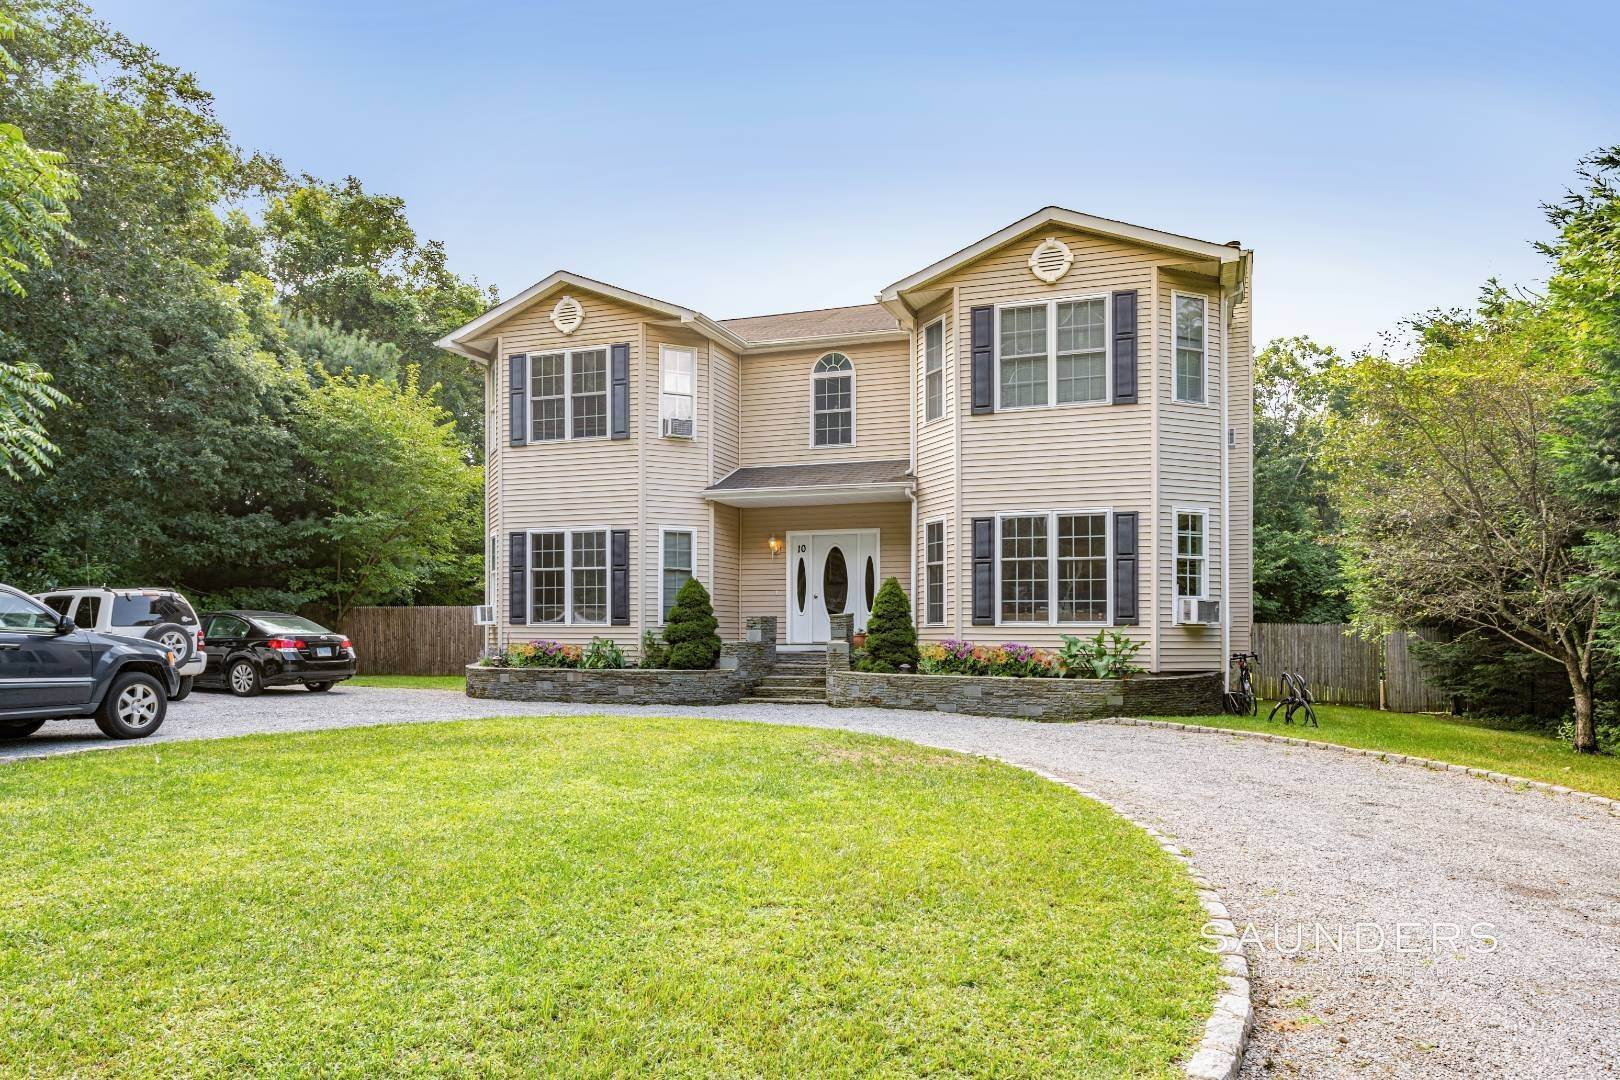 Single Family Homes for Sale at Under $1 Million On The Fringe Of East Hampton Village 10 Austin Road, East Hampton, East Hampton Town, NY 11937